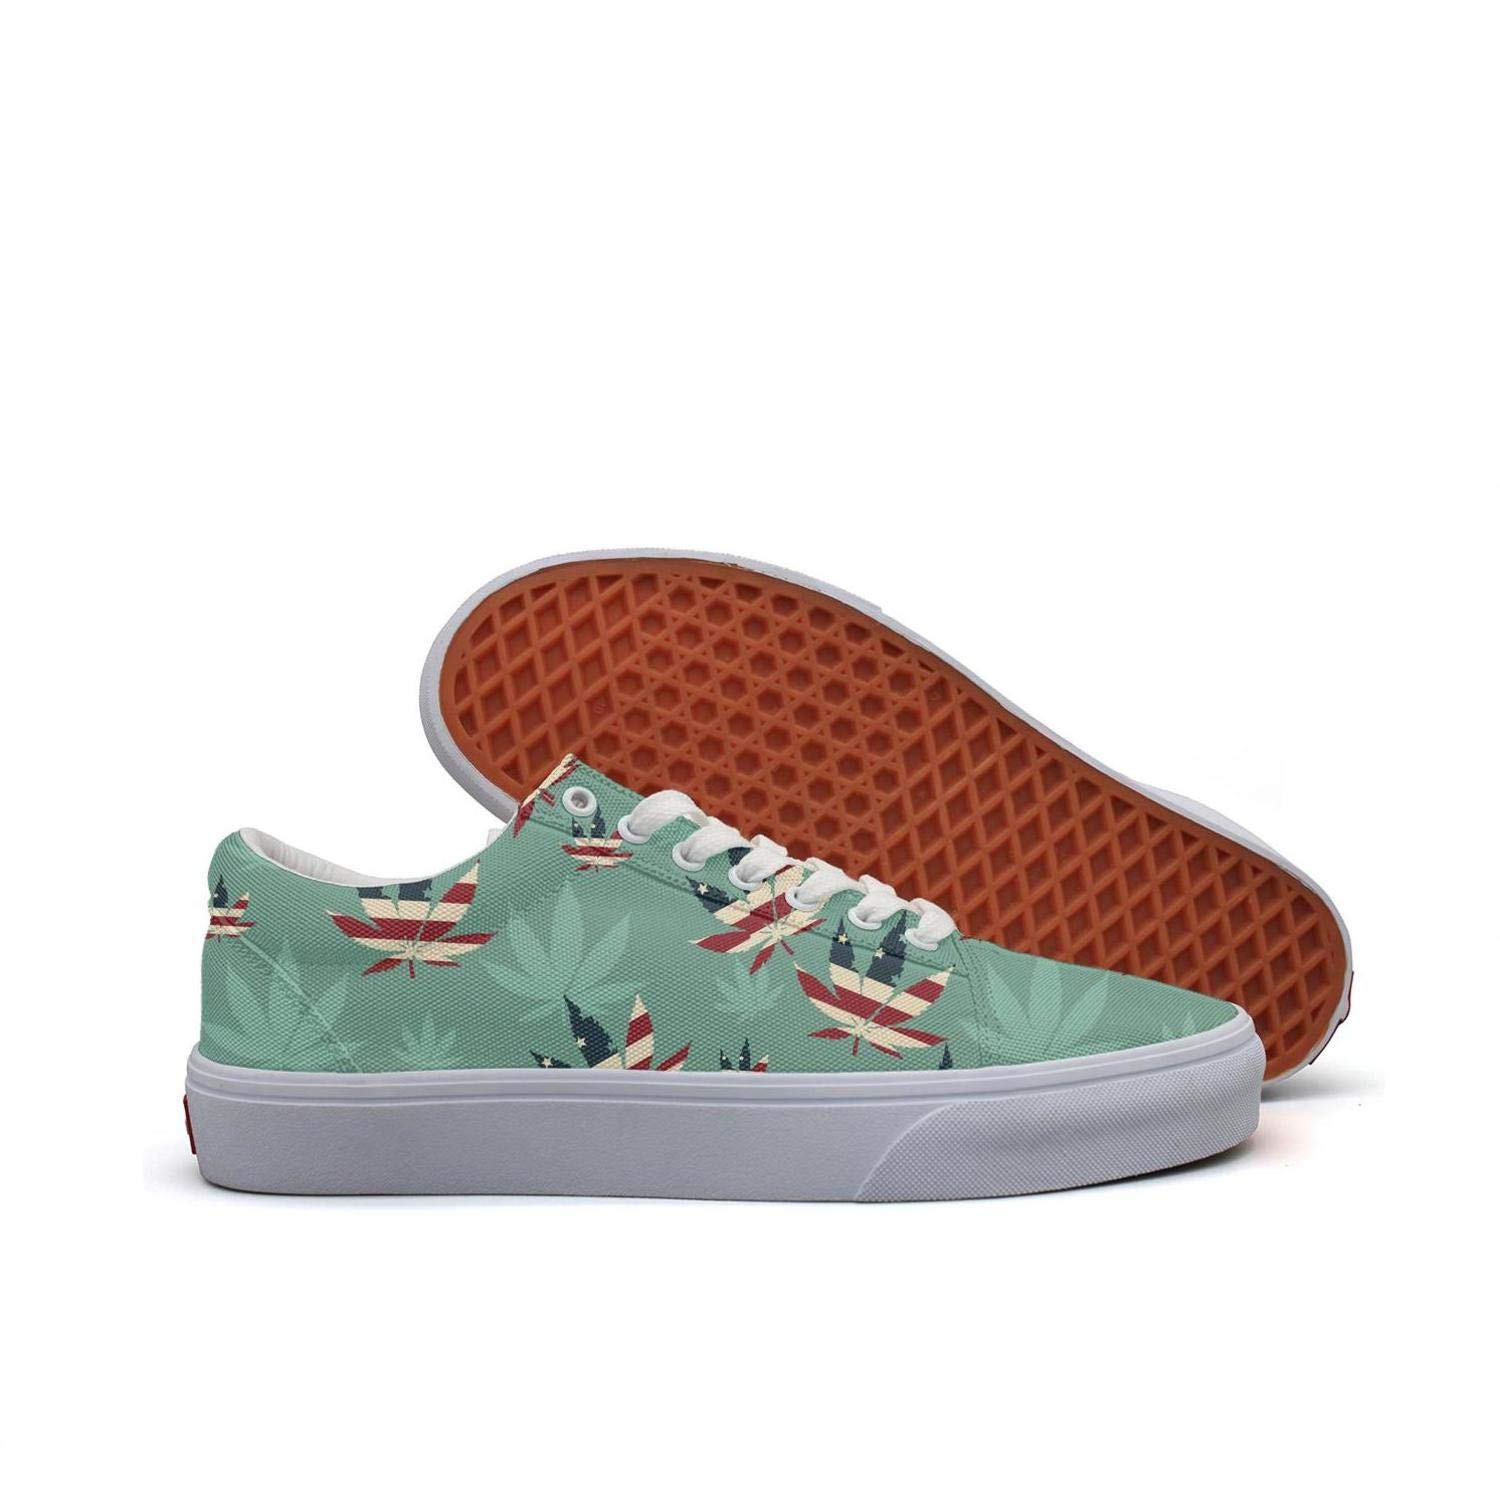 Sernfinjdr Casual lace-up Canvas Shoes for Women Cannabis Addiction Stone Trendy Cycling Sneaker Shoes